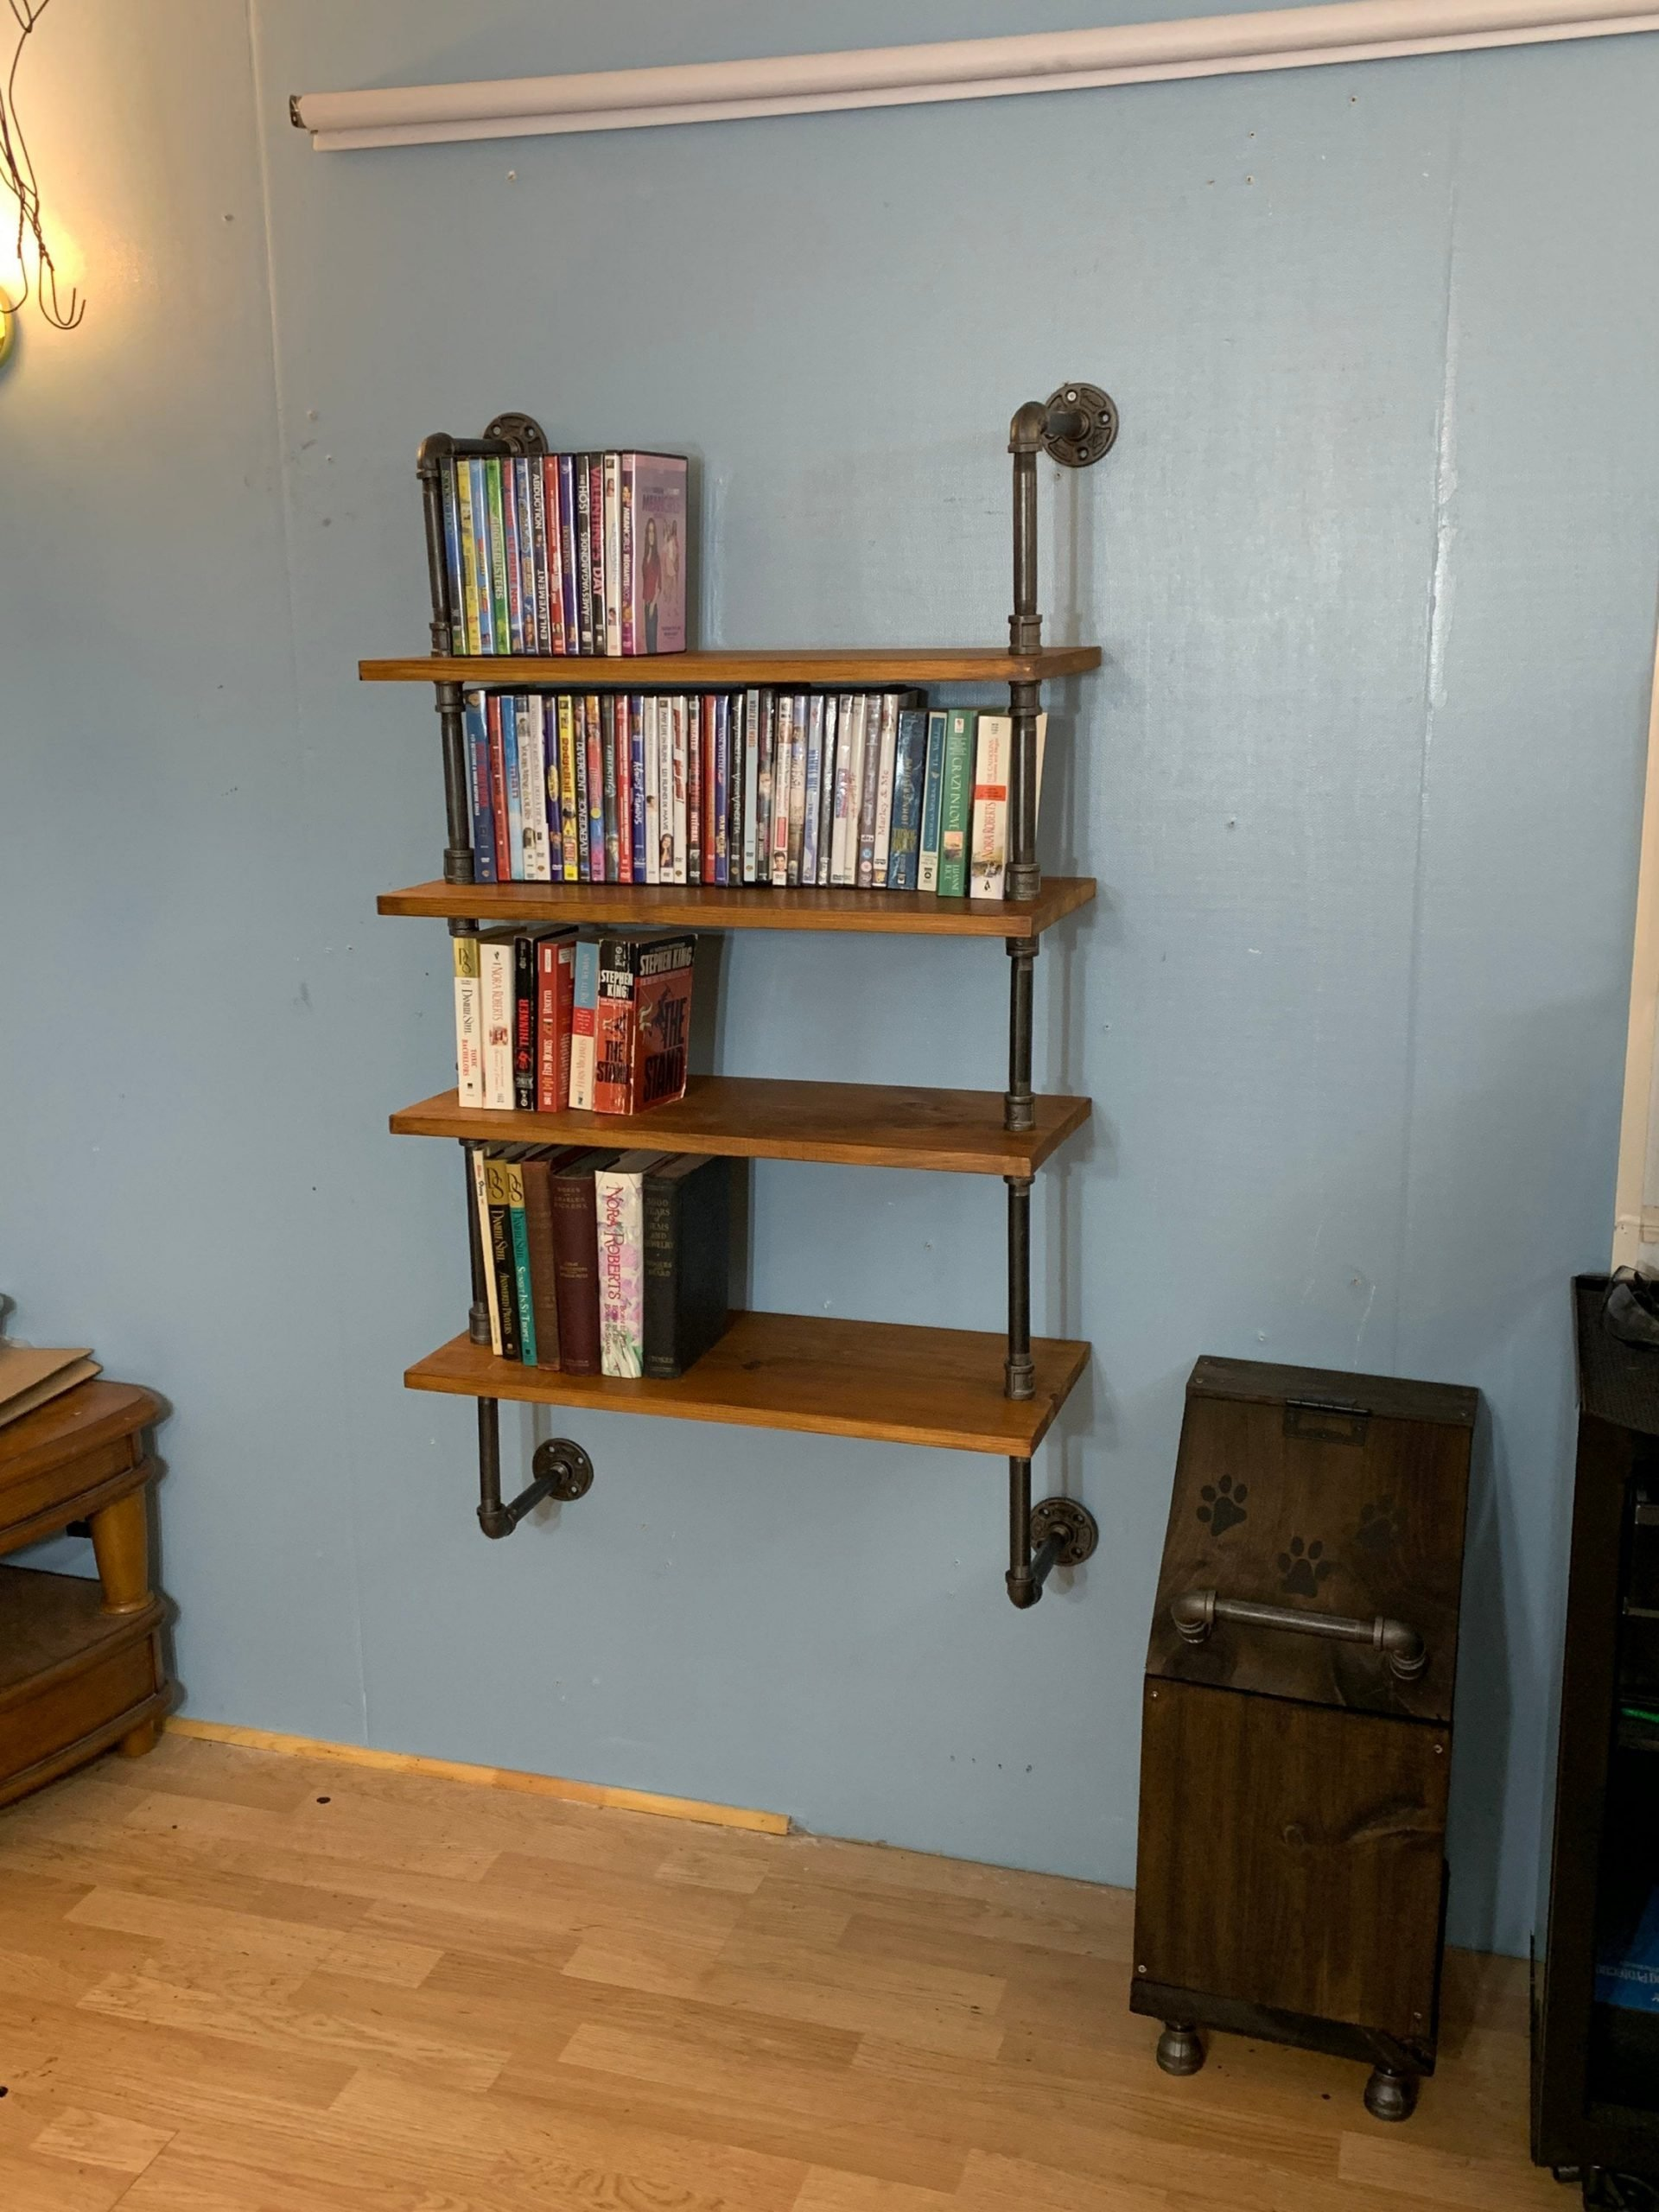 https://pipeworkpieces.com/wp-content/uploads/2021/01/4-tier-wall-mounted-dvd-book-rack-wall-rack-for-dvd-book-case-book-shelf-5ff78aae-scaled.jpg